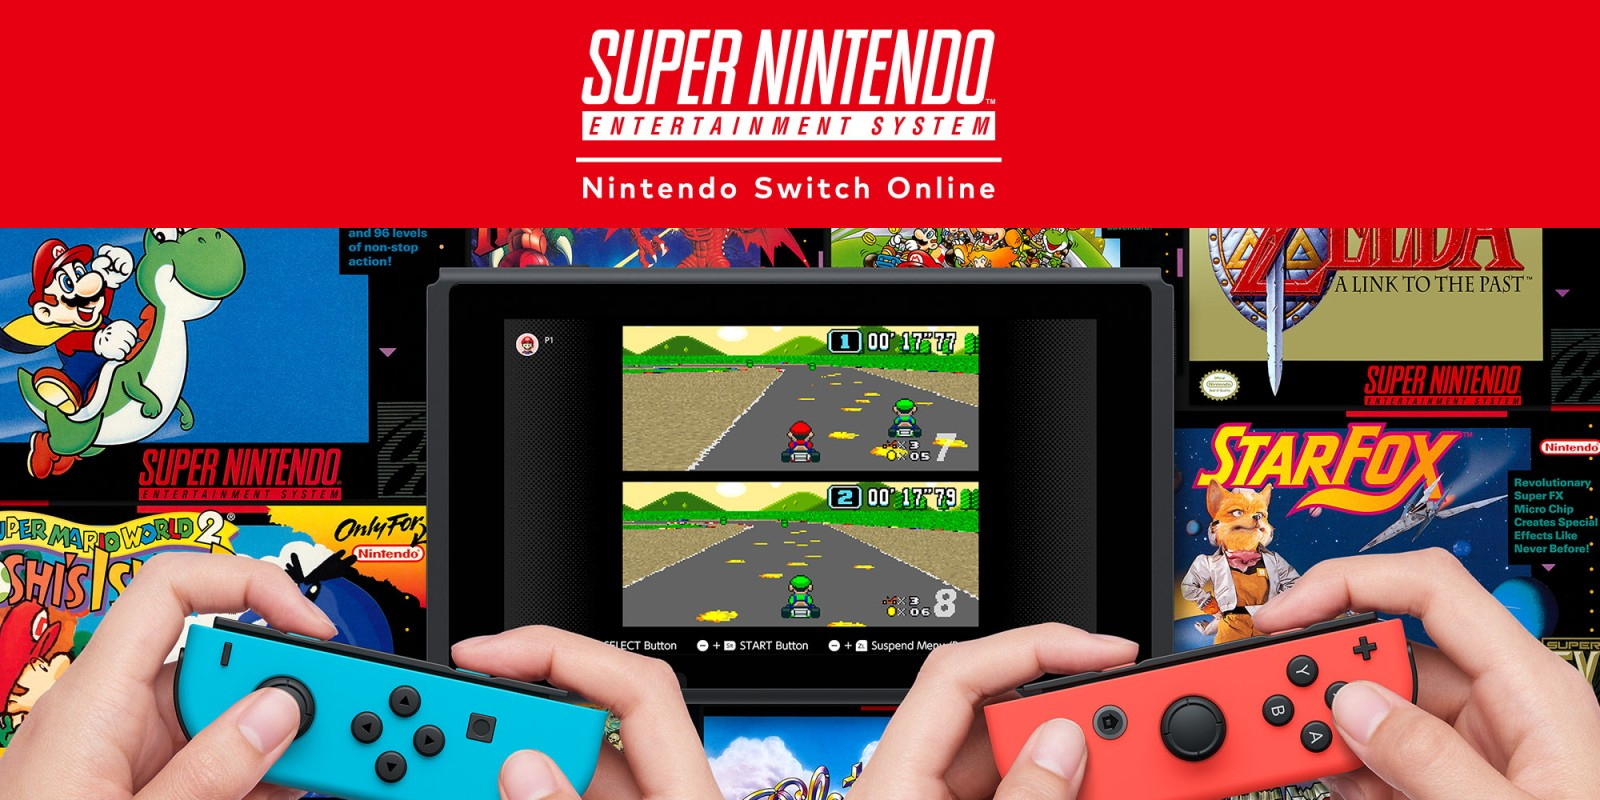 Super Nintendo Entertainment System Online, tutte le novità 1